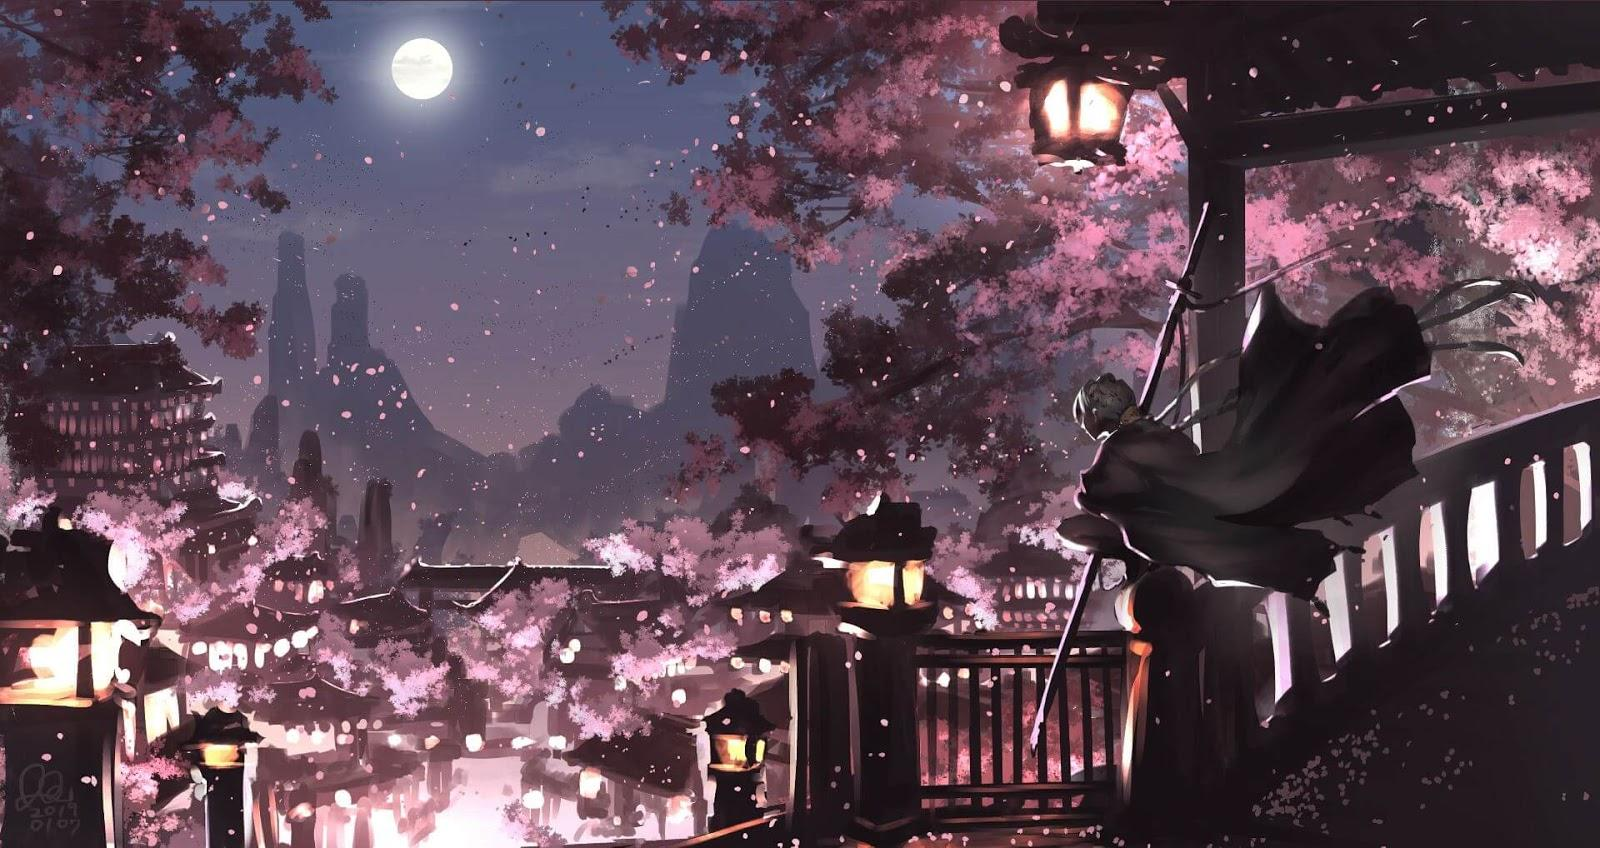 Sakura Night Wallpapers Wallpaper Cave